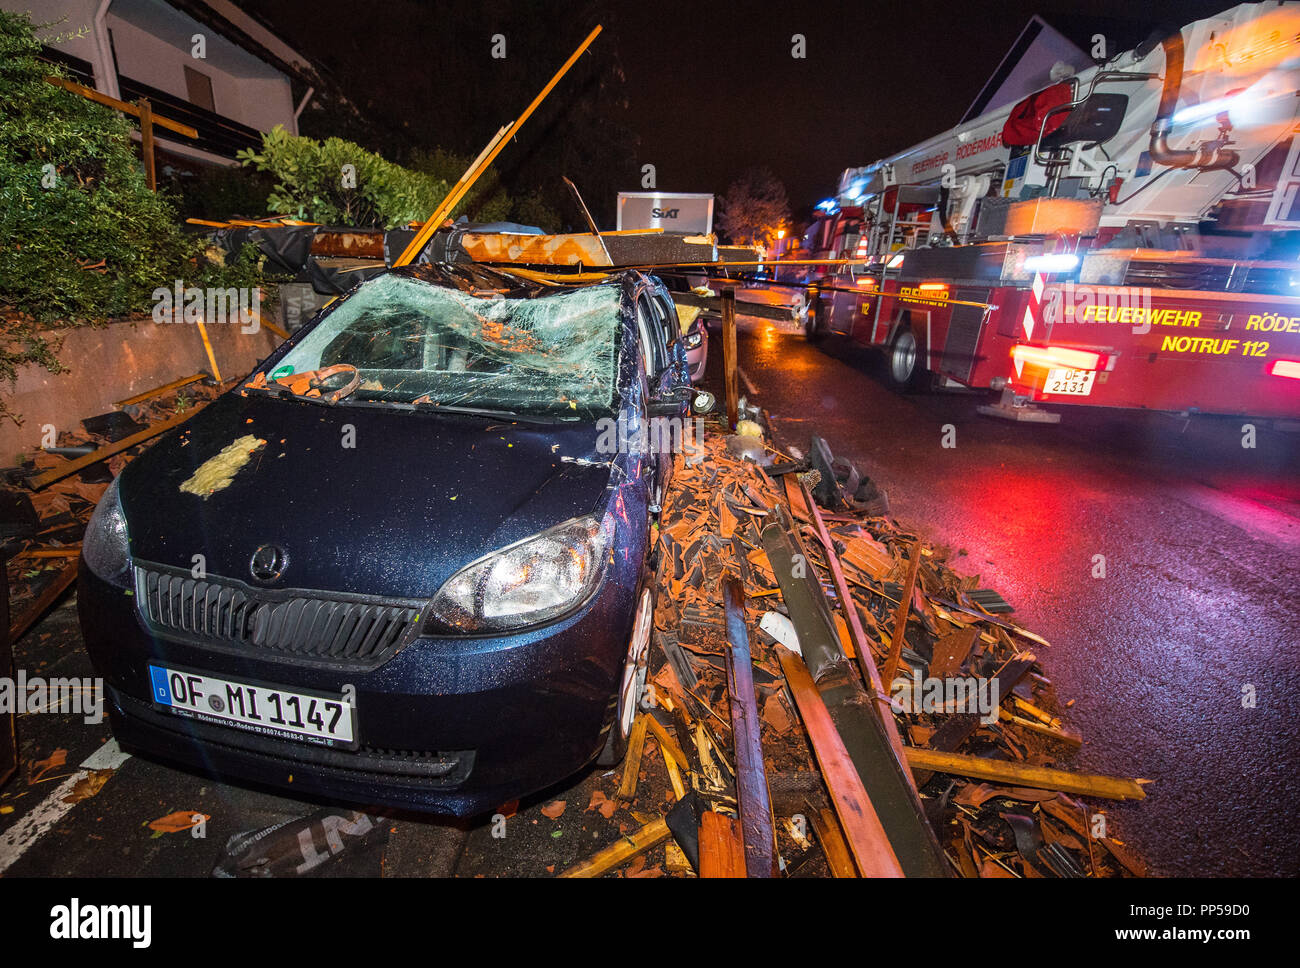 Roedermark, Hessen. 23rd Sep, 2018. A fire engine passing a badly damaged car with its roof pressed in and windshield destroyed. According to a resident, a very strong gust of wind dragged a house roof and hurled it onto the opposite side of the street. A car parked there was completely buried under the rubble and severely damaged. Credit: Andreas Arnold/dpa/Alamy Live News - Stock Image